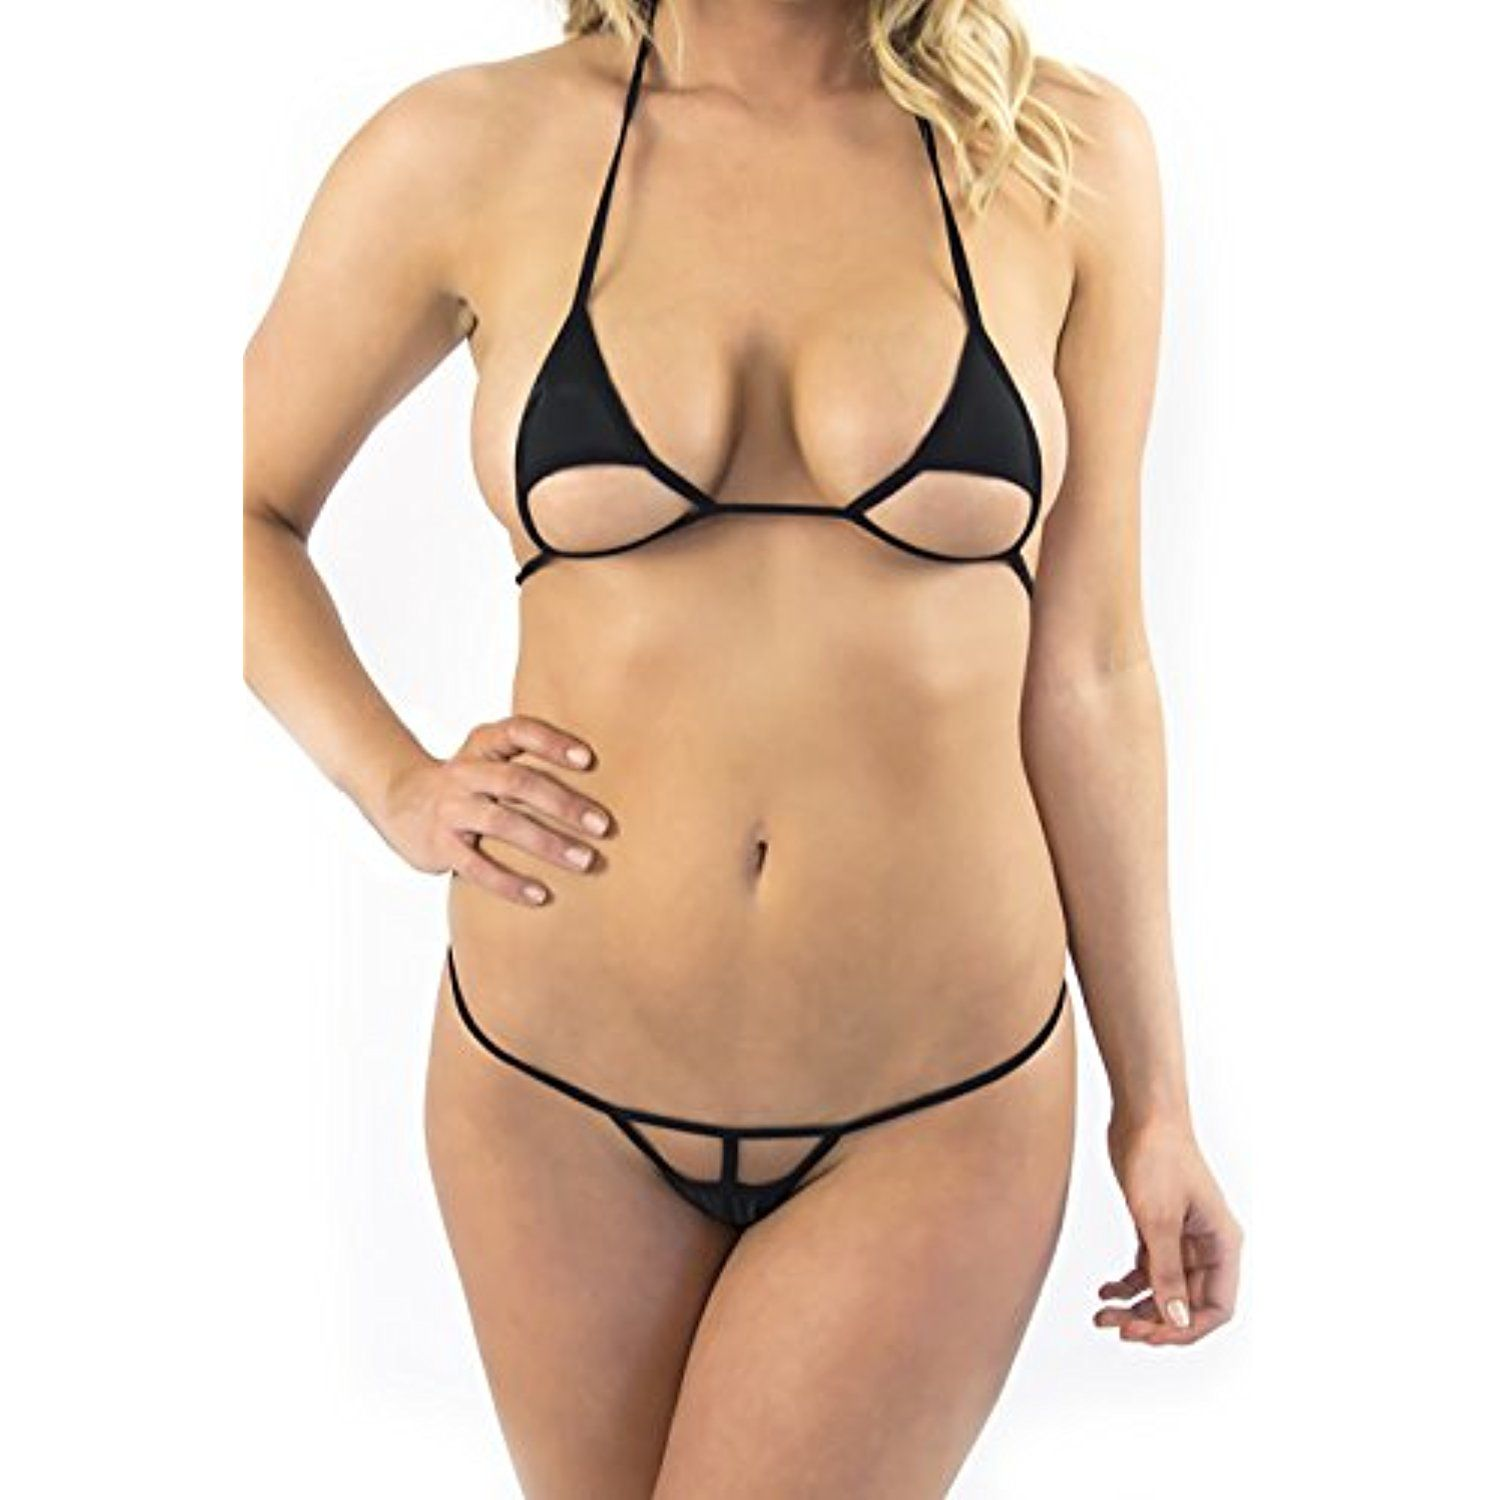 2c7c048d491c Women's Black Extreme Sexy Micro Bikini Swimsuit Thong Bikinis >>> Read  more reviews of the product by visiting the link on the image.